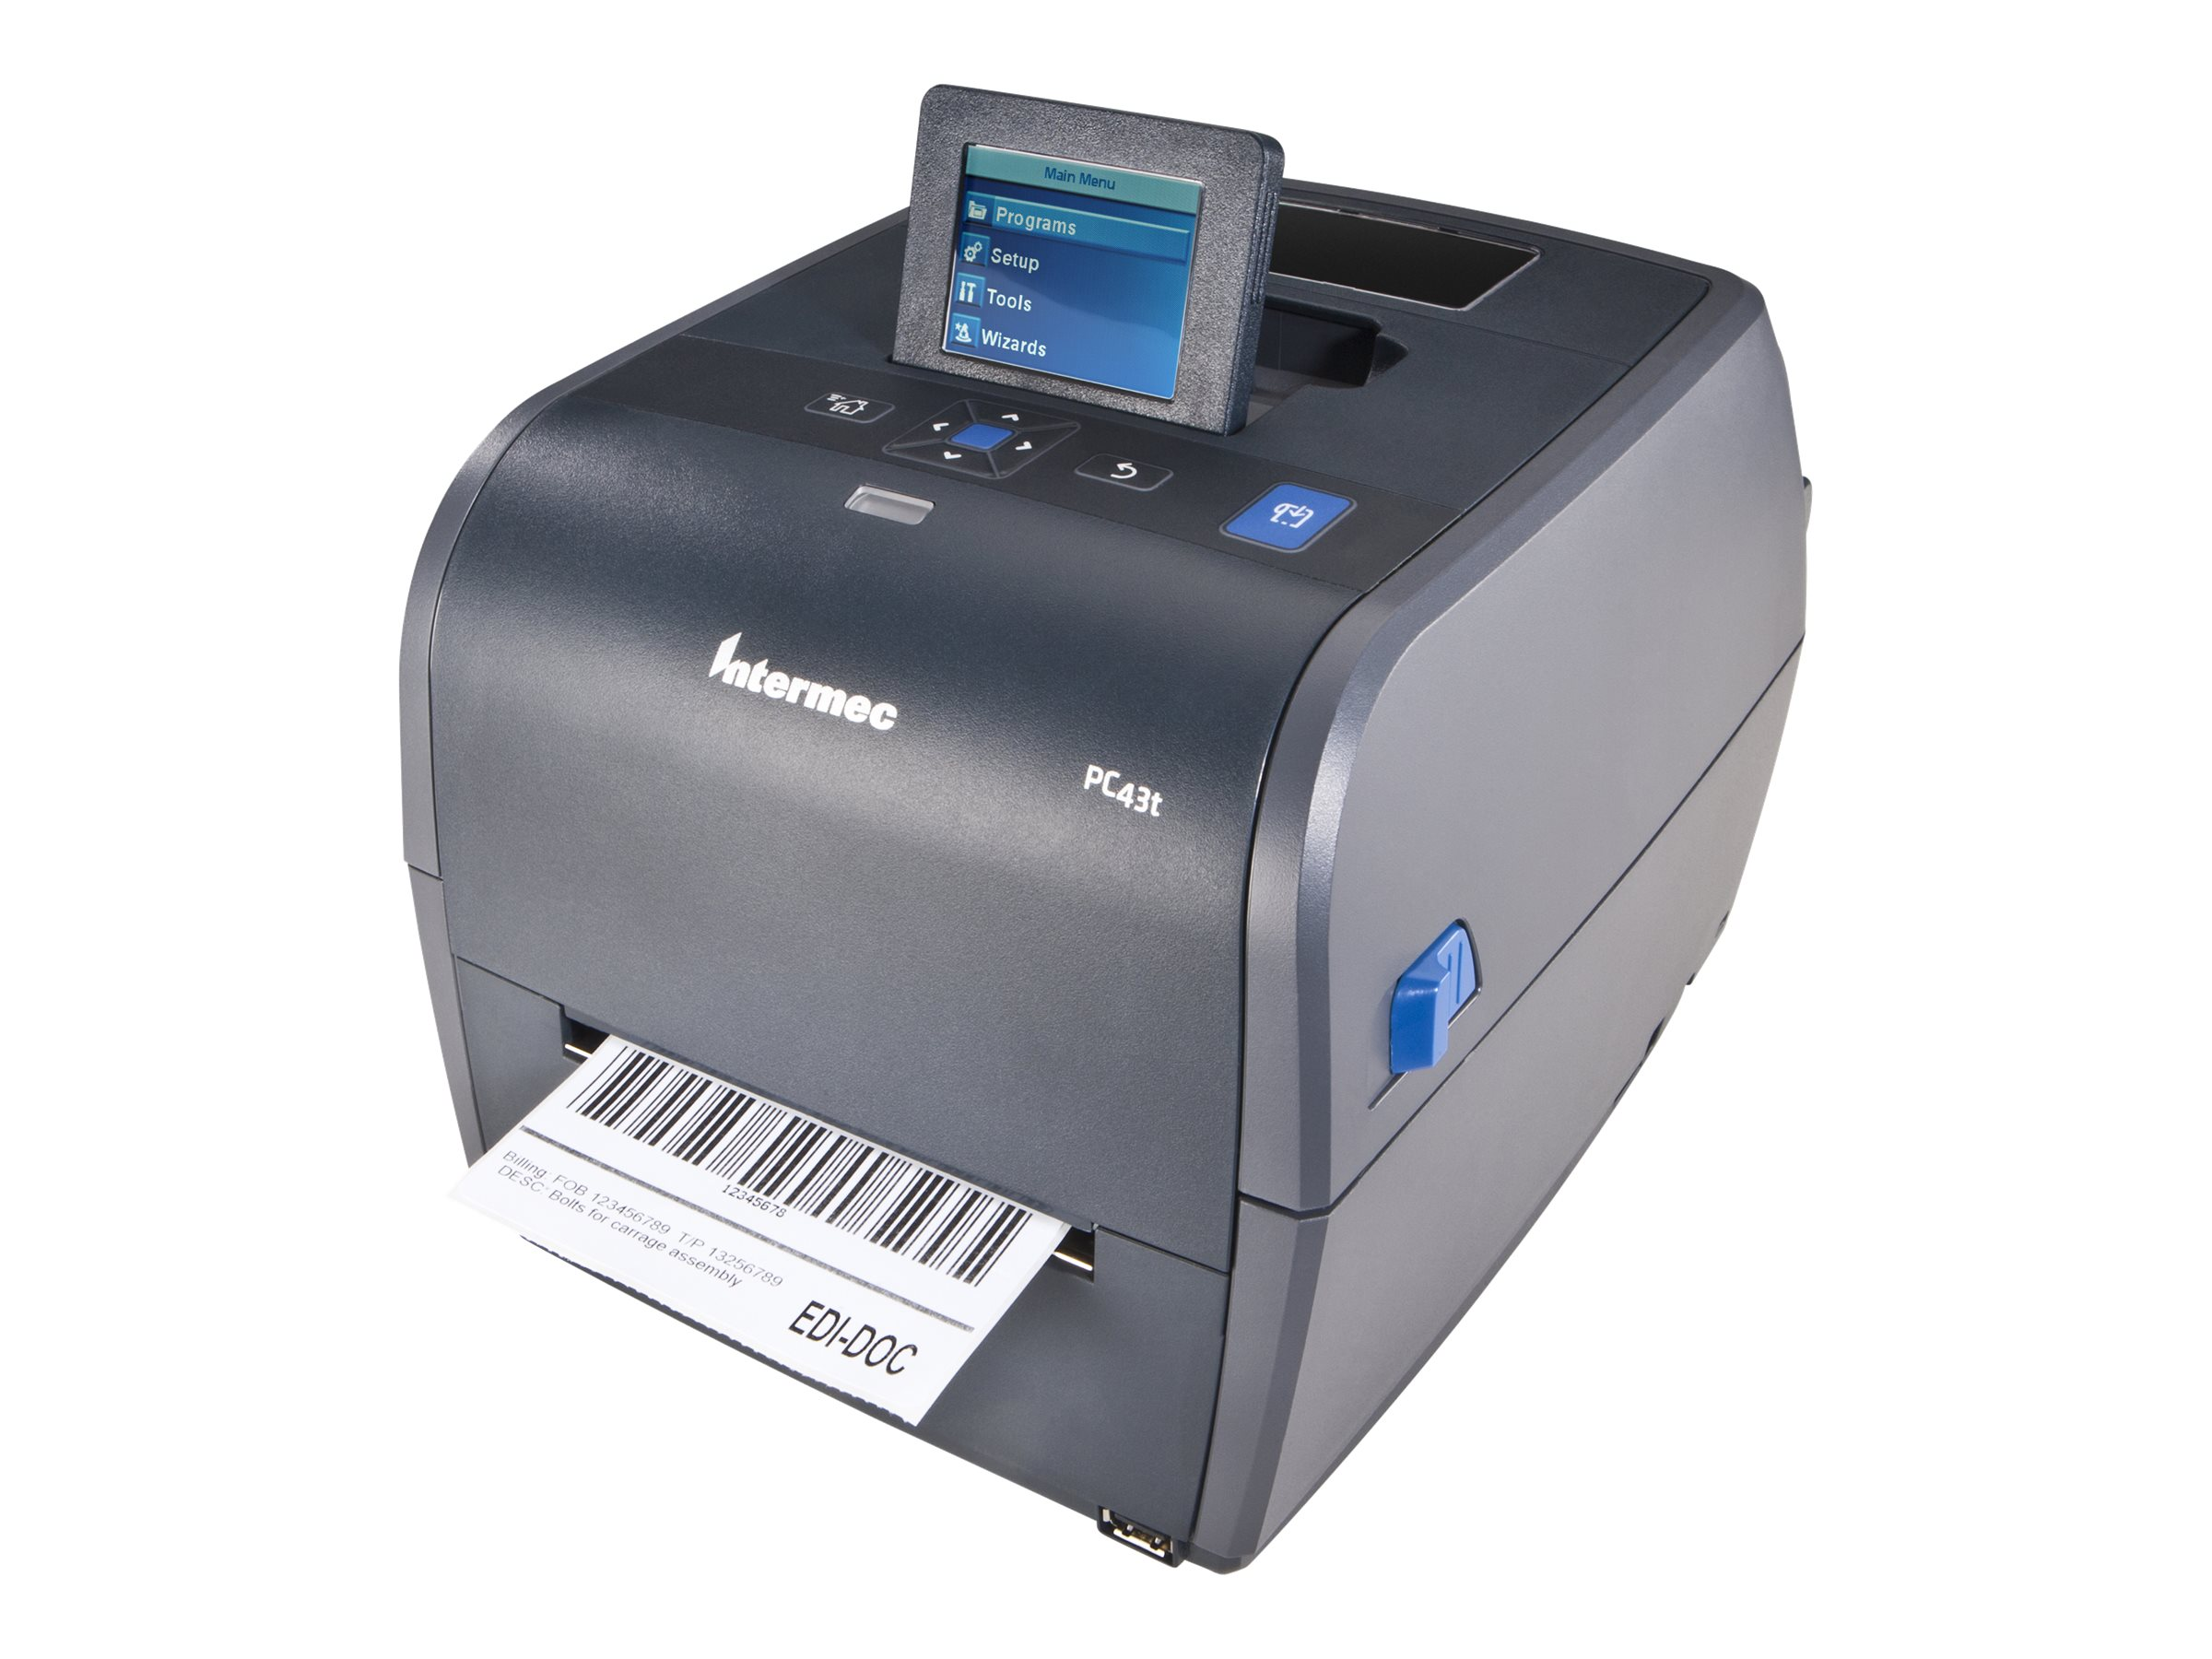 Intermec PC43T TT 203dpi UHF RFID Printer w  Power Cord & Dispenser (Latin Asian), PC43TA101NA201, 13817933, Printers - Label